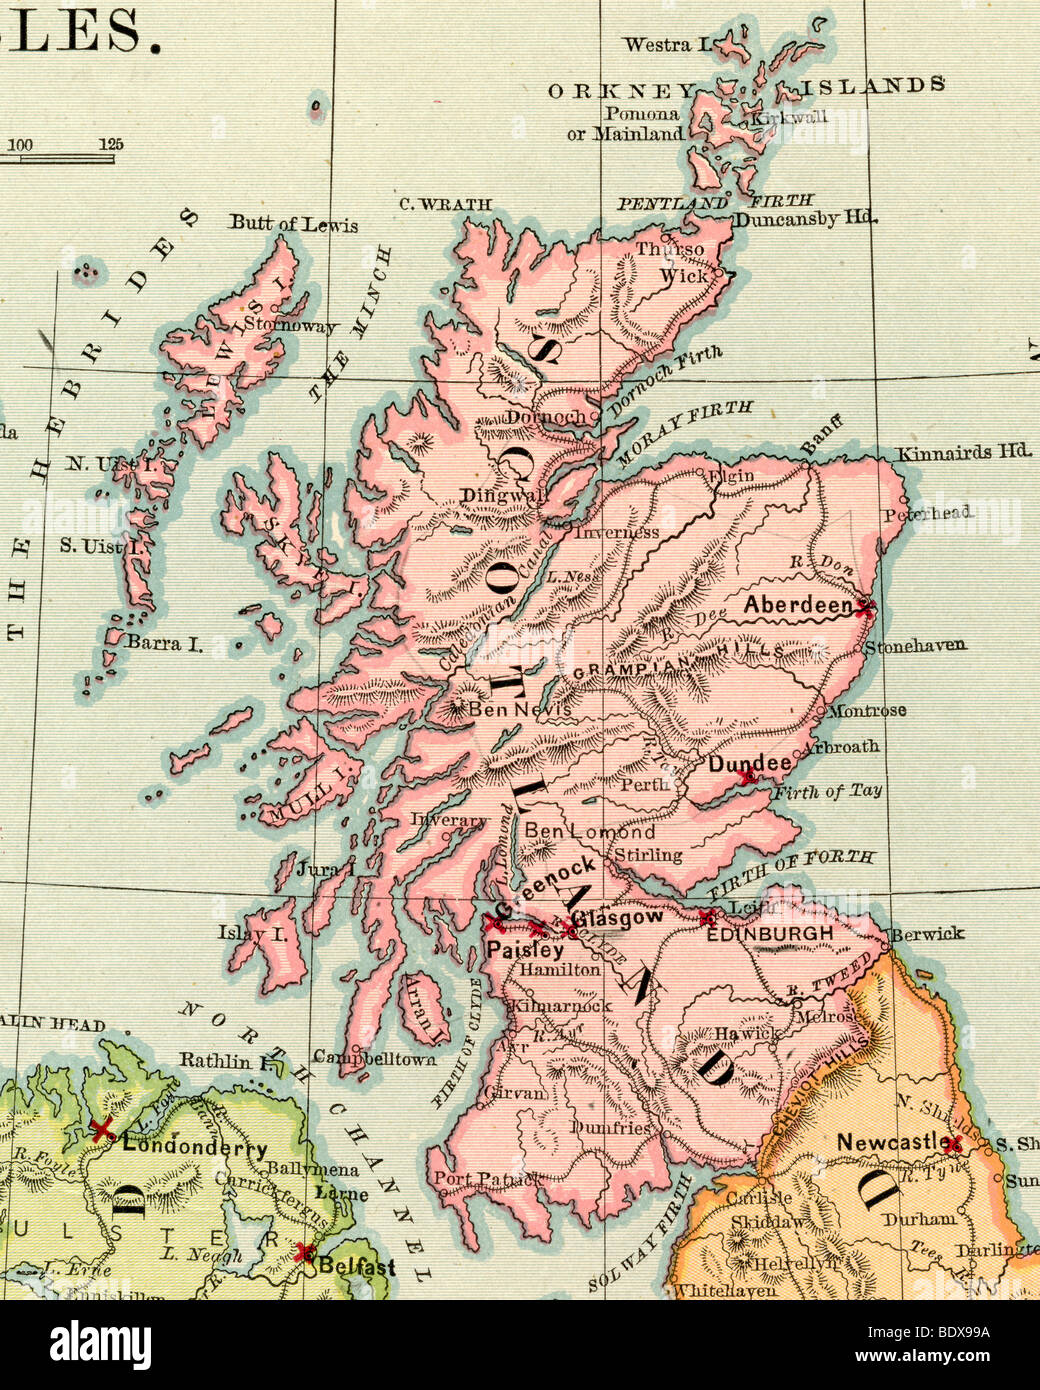 Old map scotland stock photos old map scotland stock images alamy original old map of scotland from 1875 geography textbook stock image gumiabroncs Image collections